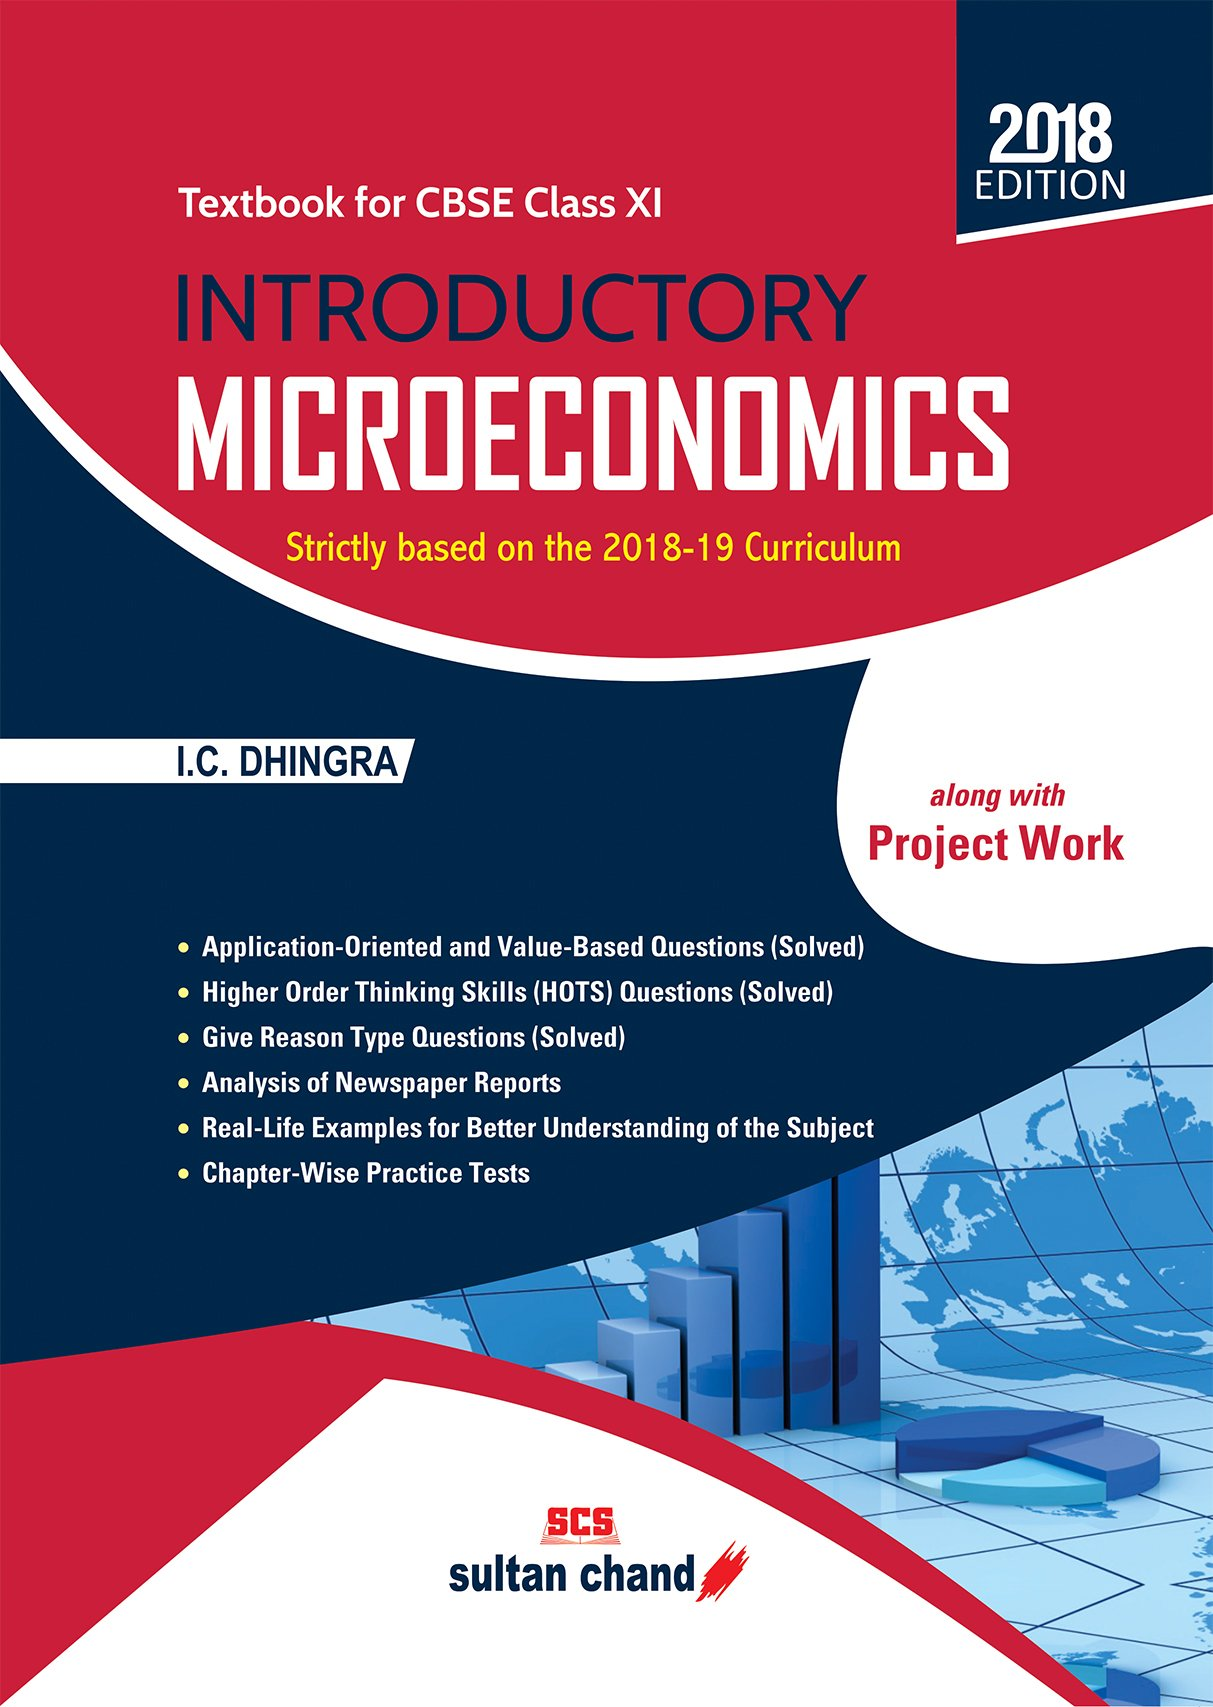 examples of microeconomics in real life